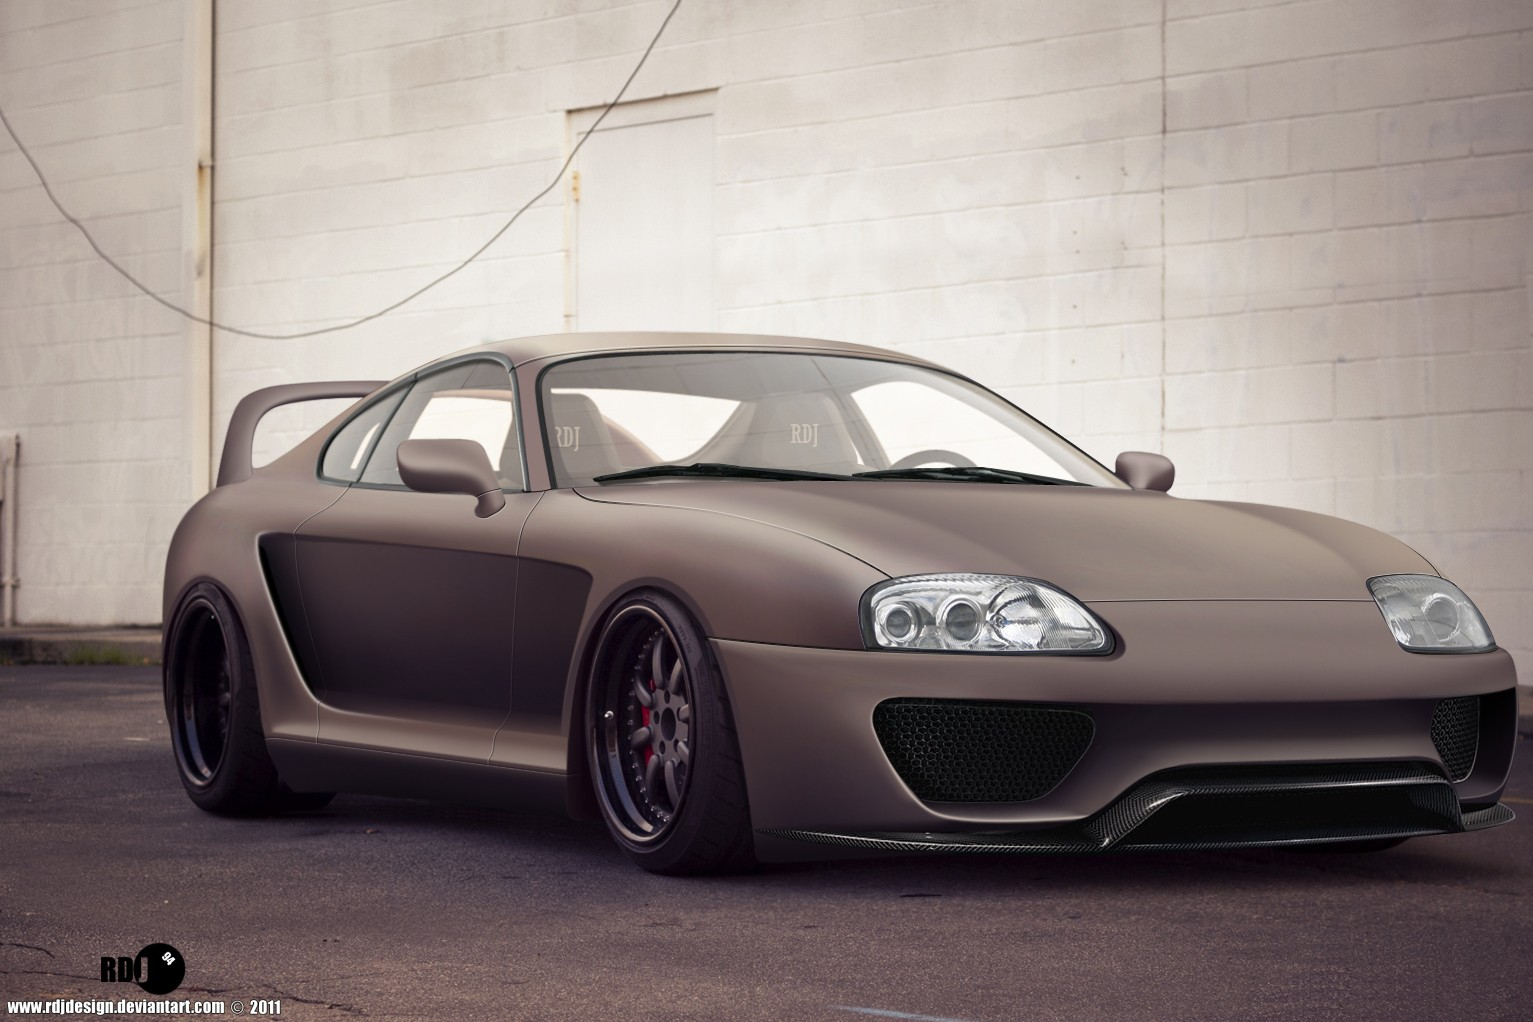 the Matte Supra Wallpaper Matte Supra iPhone Wallpaper Matte Supra 1533x1022